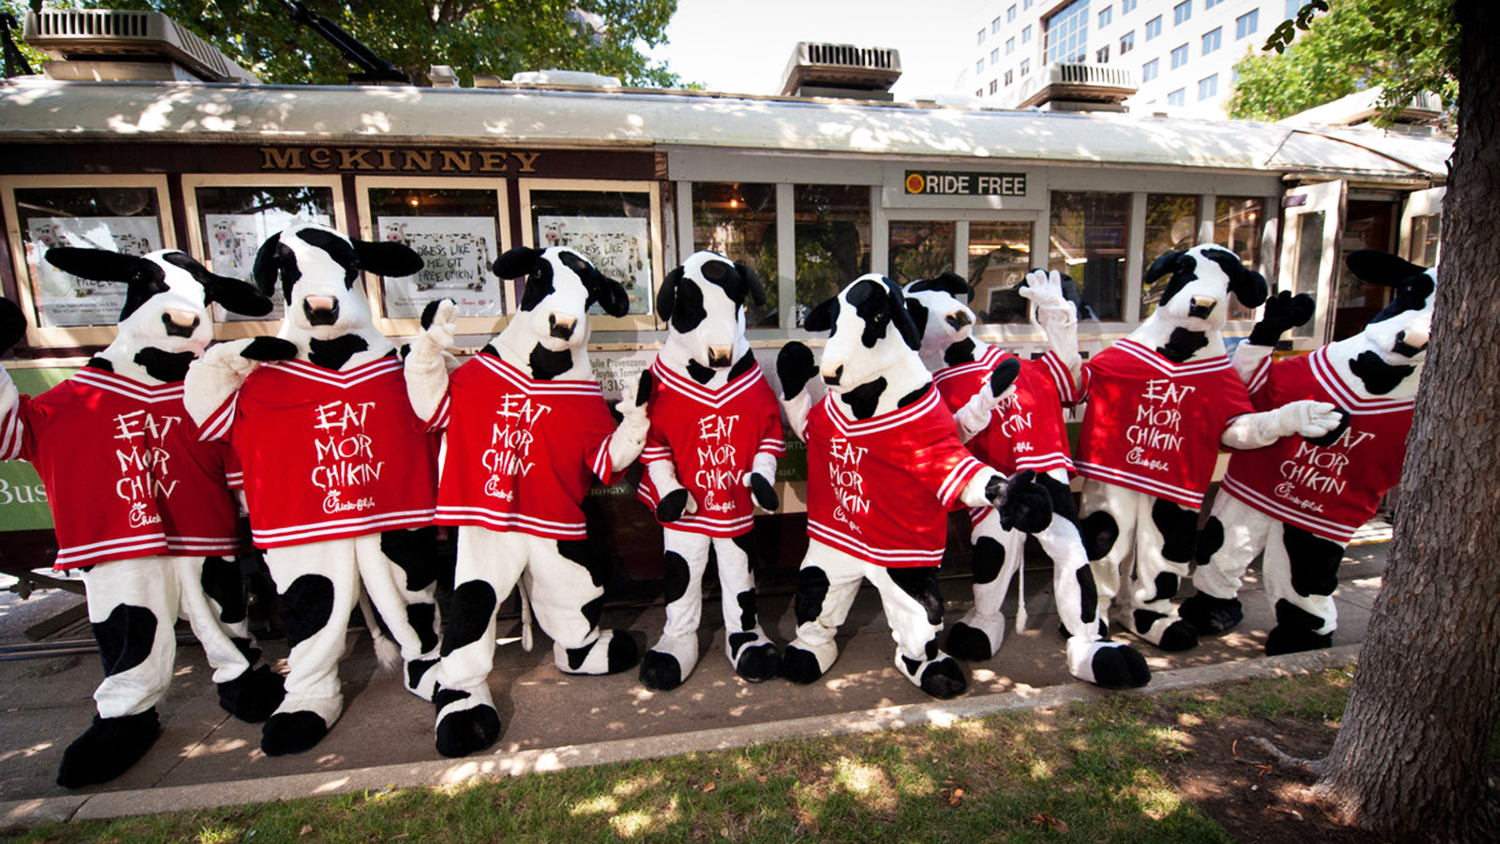 How to Get Free Chick-Fil-A This Month